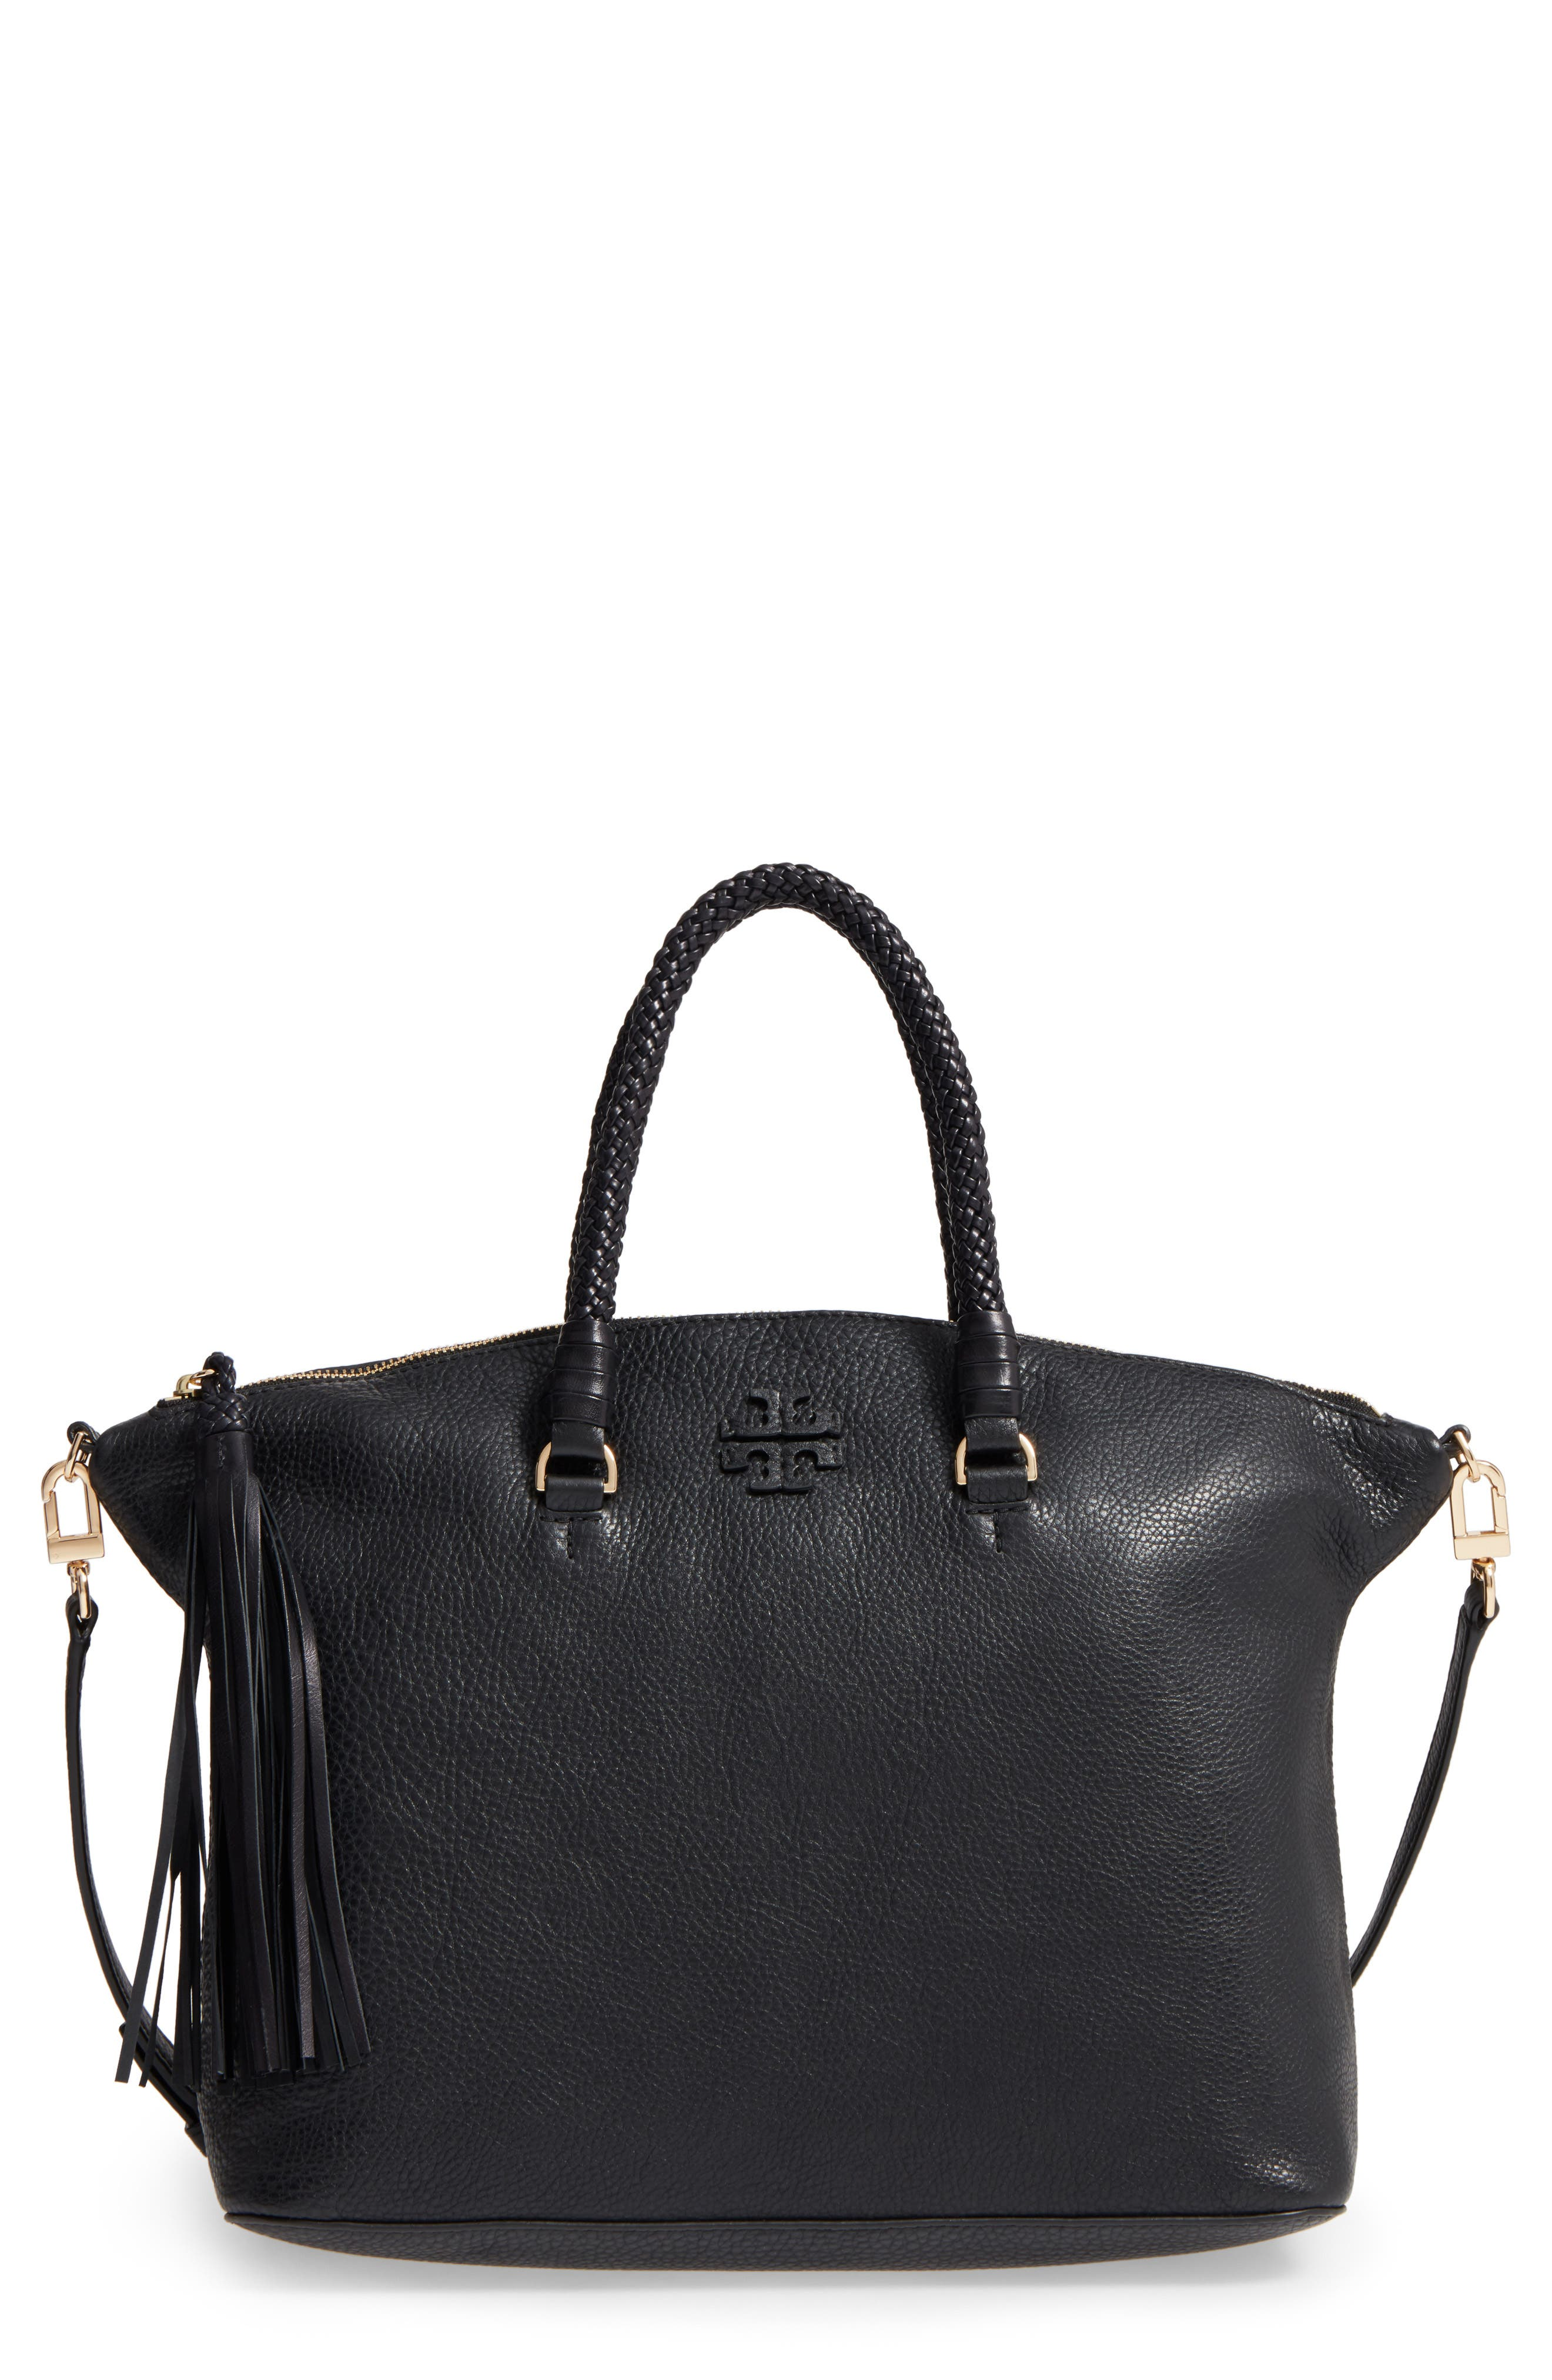 TORY BURCH Taylor Leather Satchel, Main, color, 001